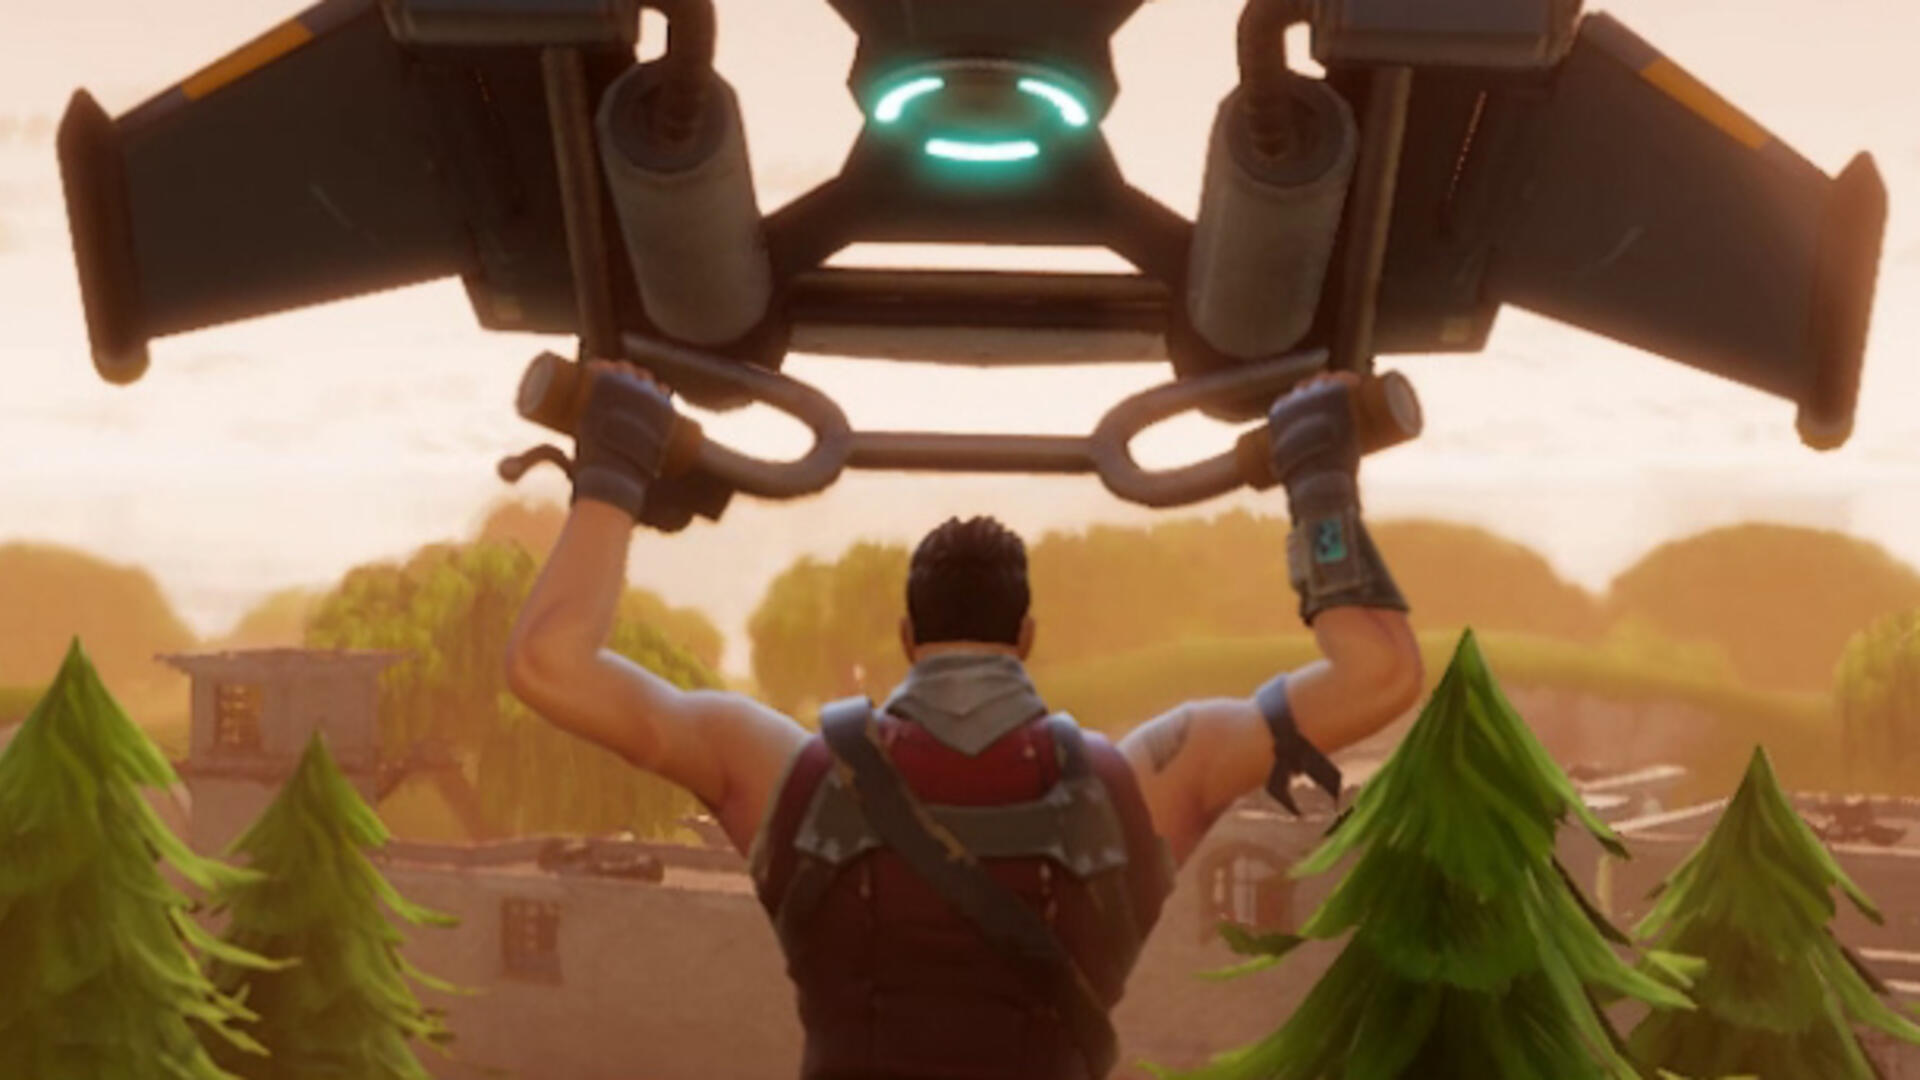 Fortnite Accounts Are Being Targeted by Hackers